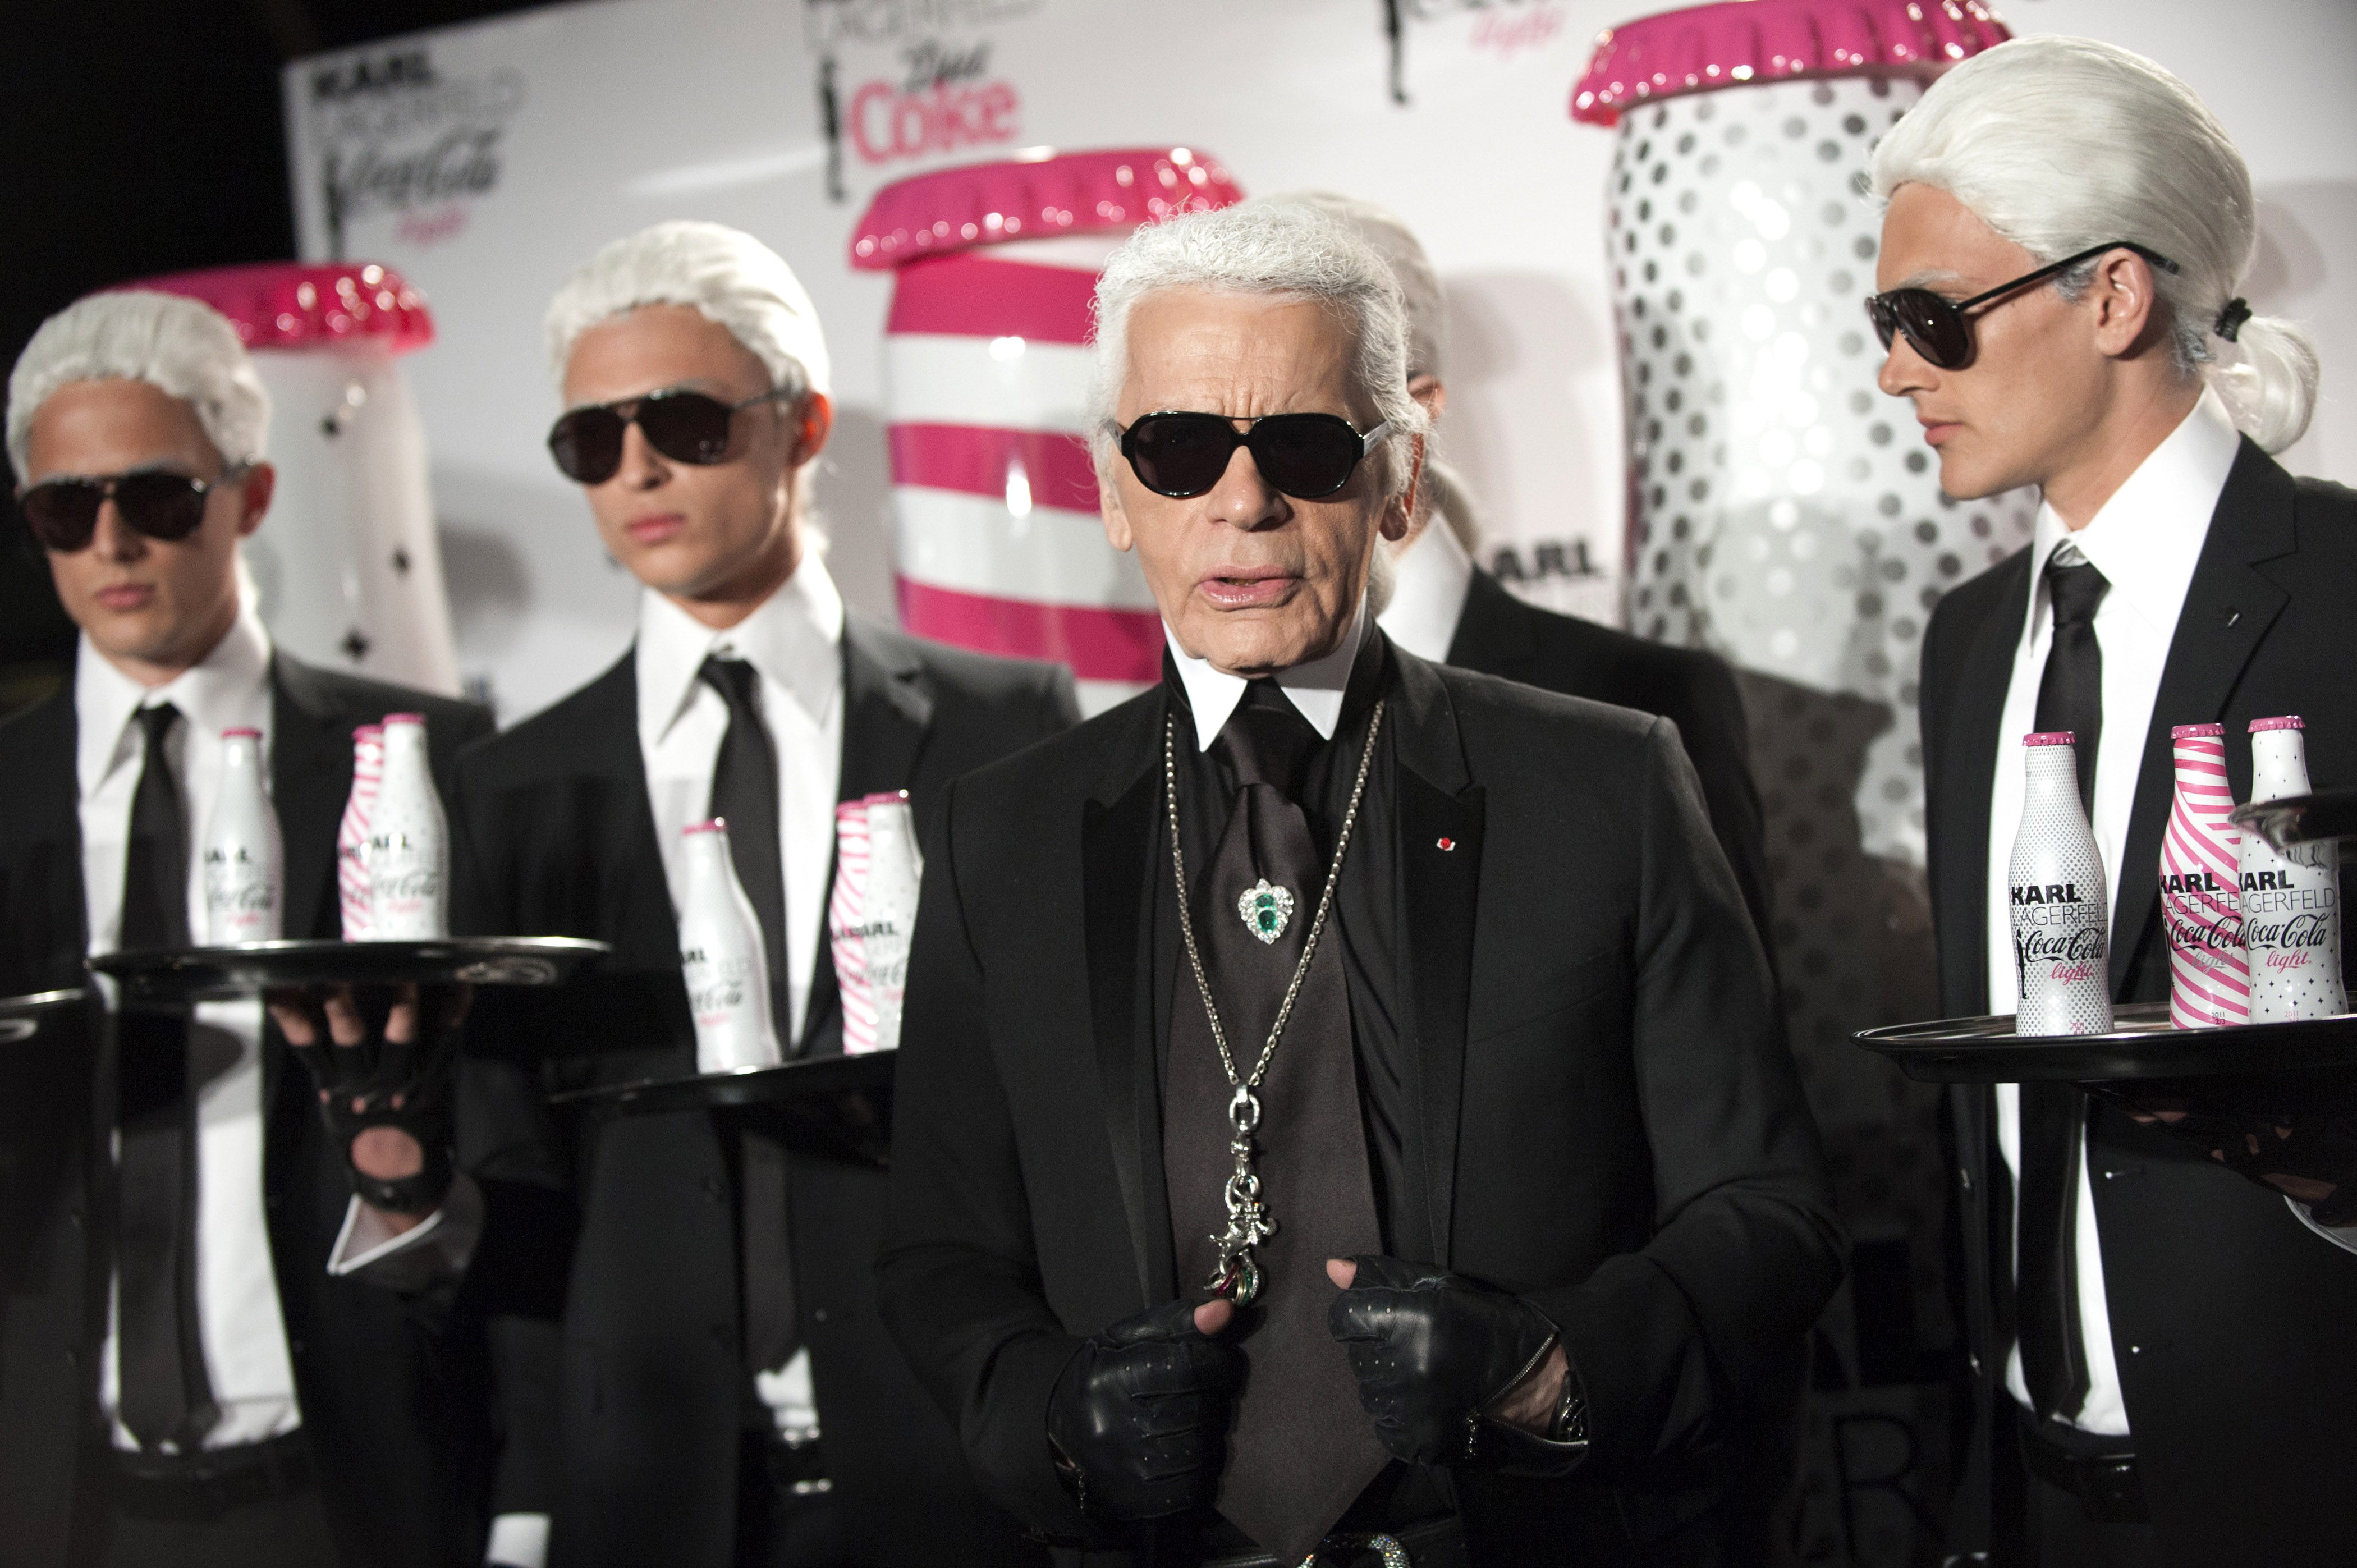 e091c80d39 The enduring influence of Karl Lagerfeld